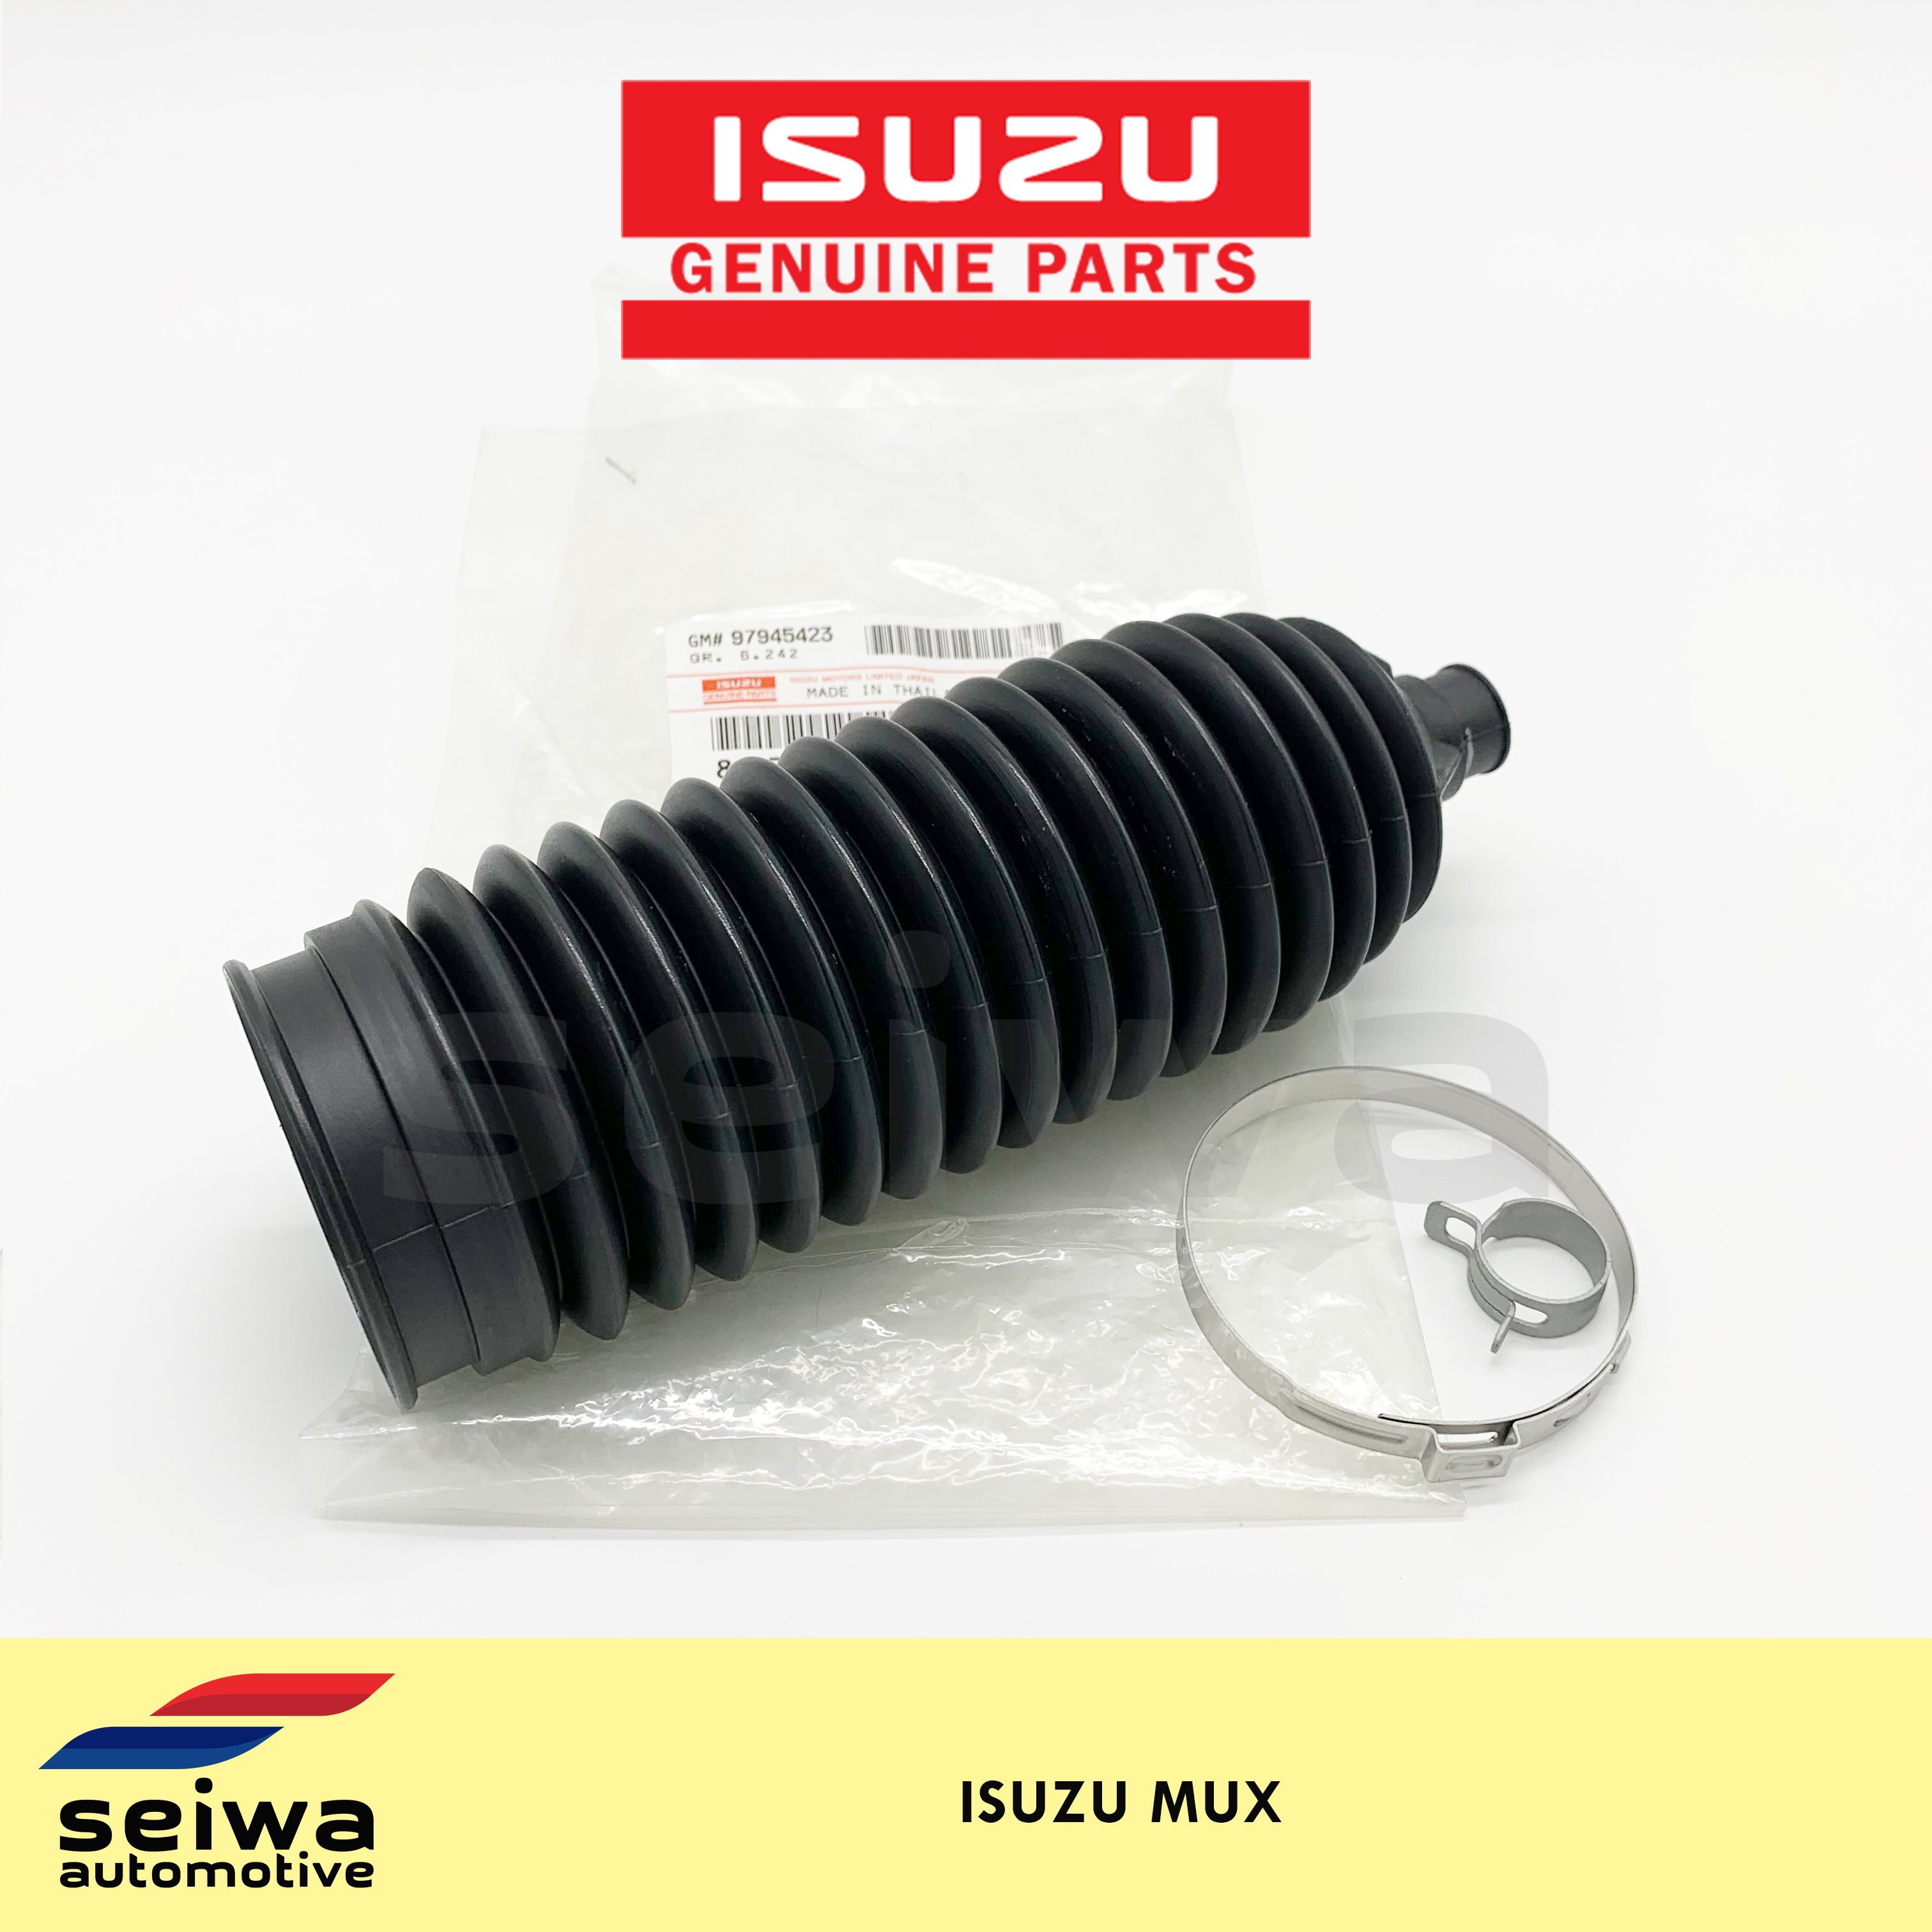 5 Series Rack /& Pinion Bellow//Boot 6 PIECE KIT-IN STOCK-2 Boots 4 Clamps BMW 3